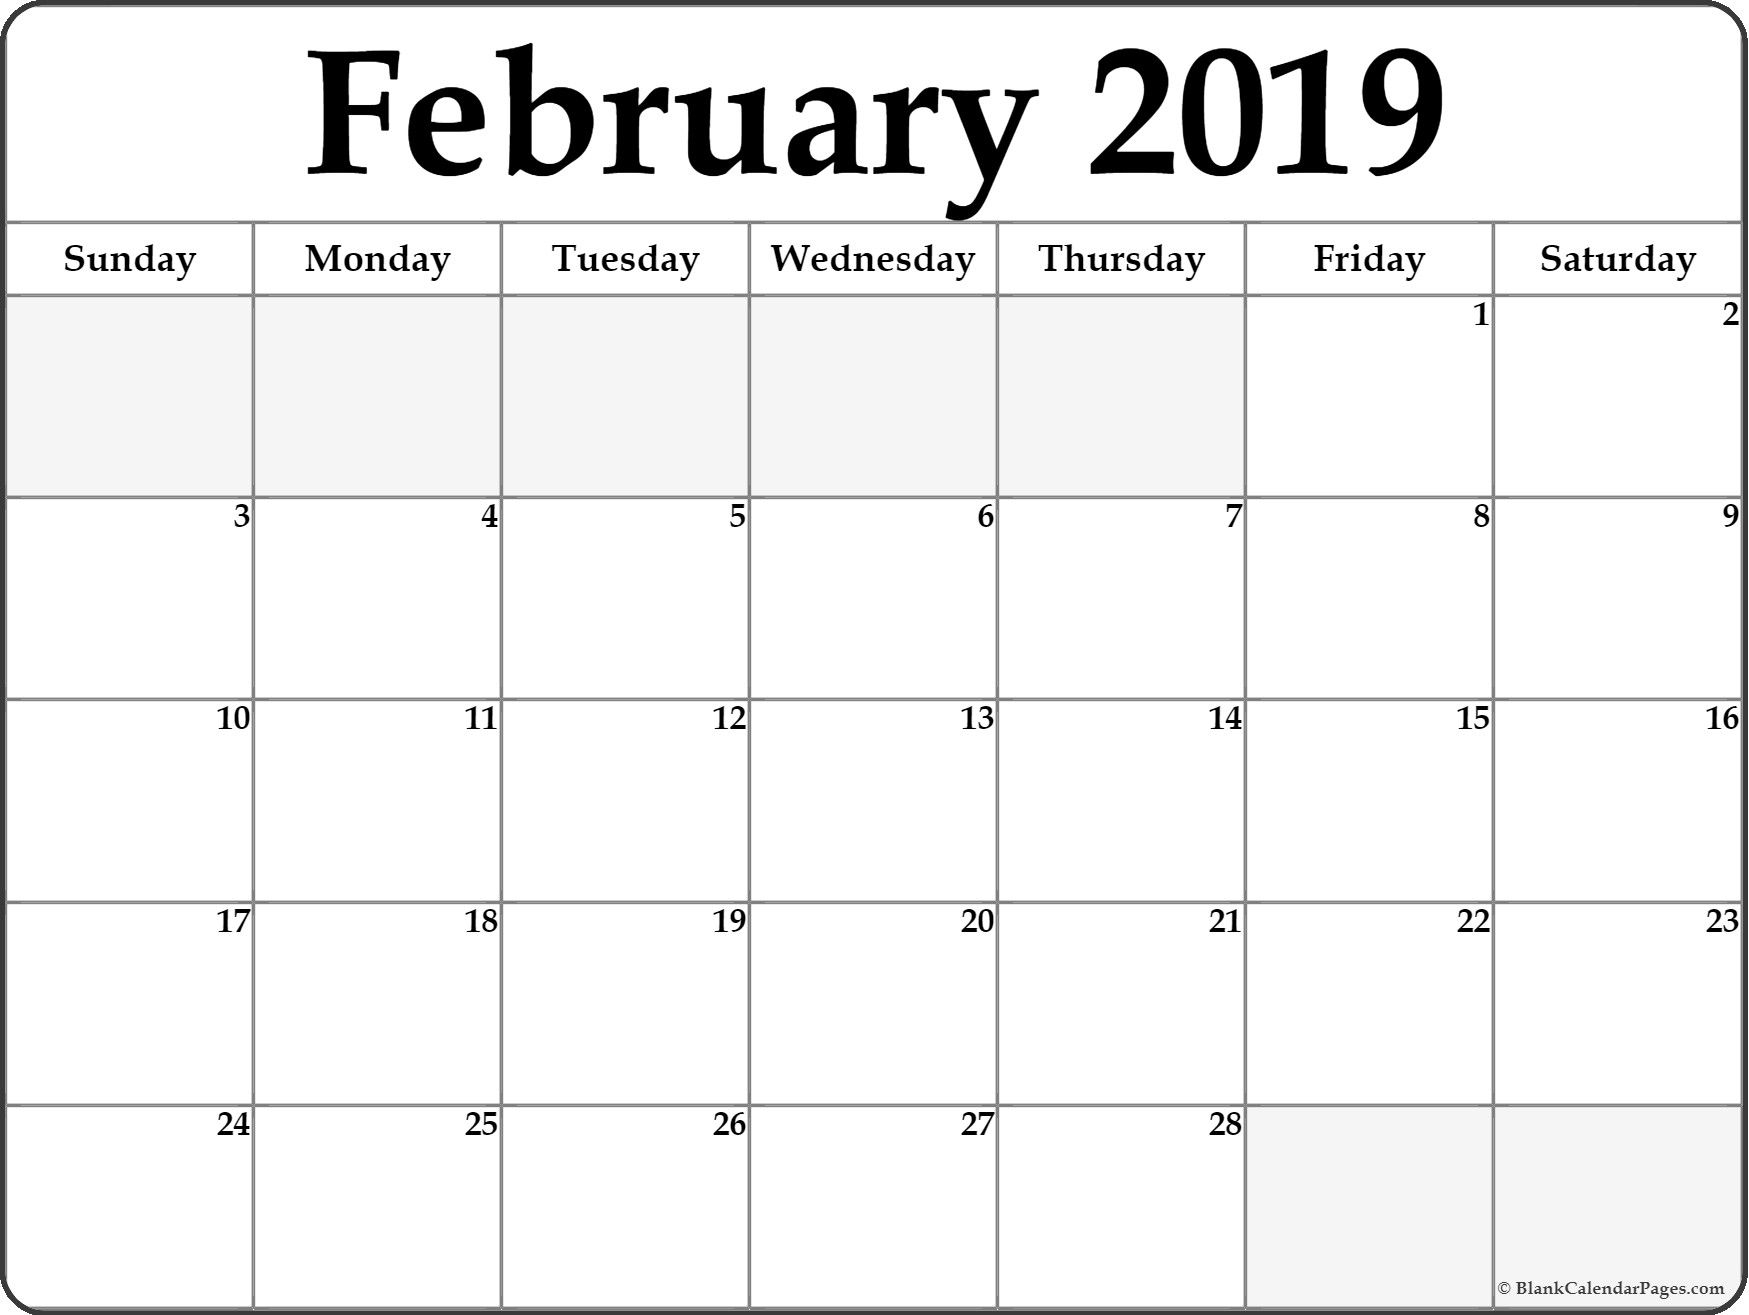 Blank Calendar February 2019 Printable Template Download - February throughout Editable Calendars Download Template